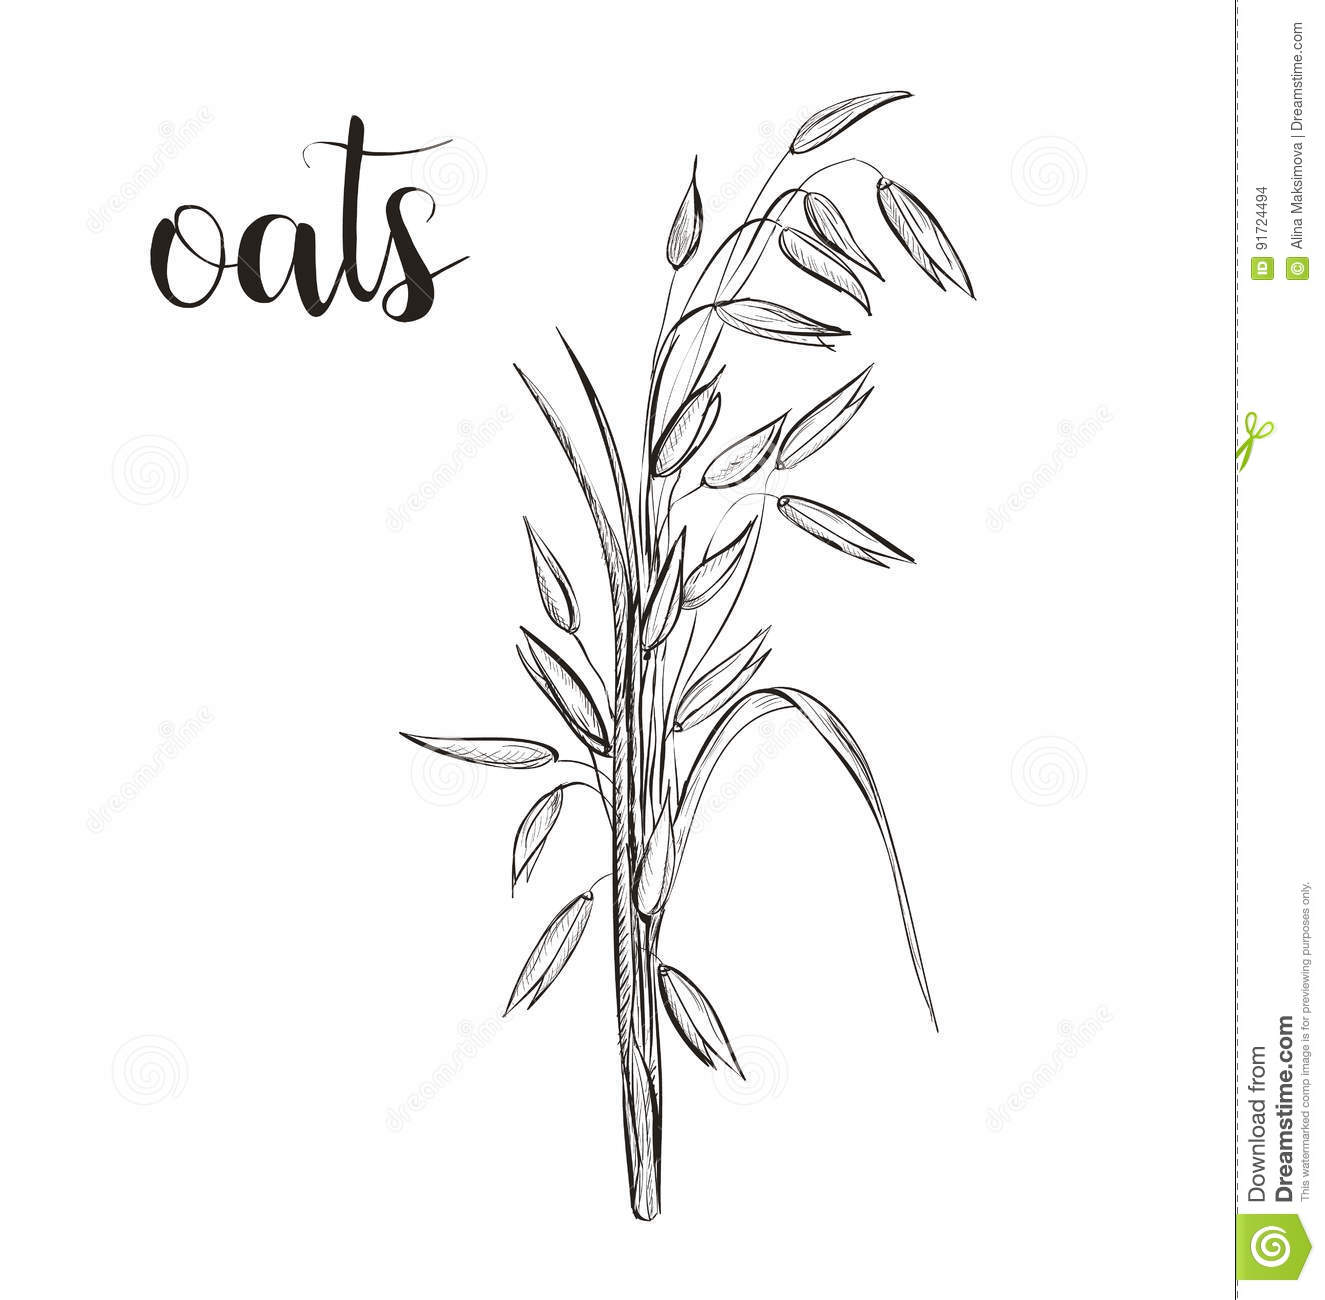 Oats Sketch Hand Drawing Vector Stock Vector